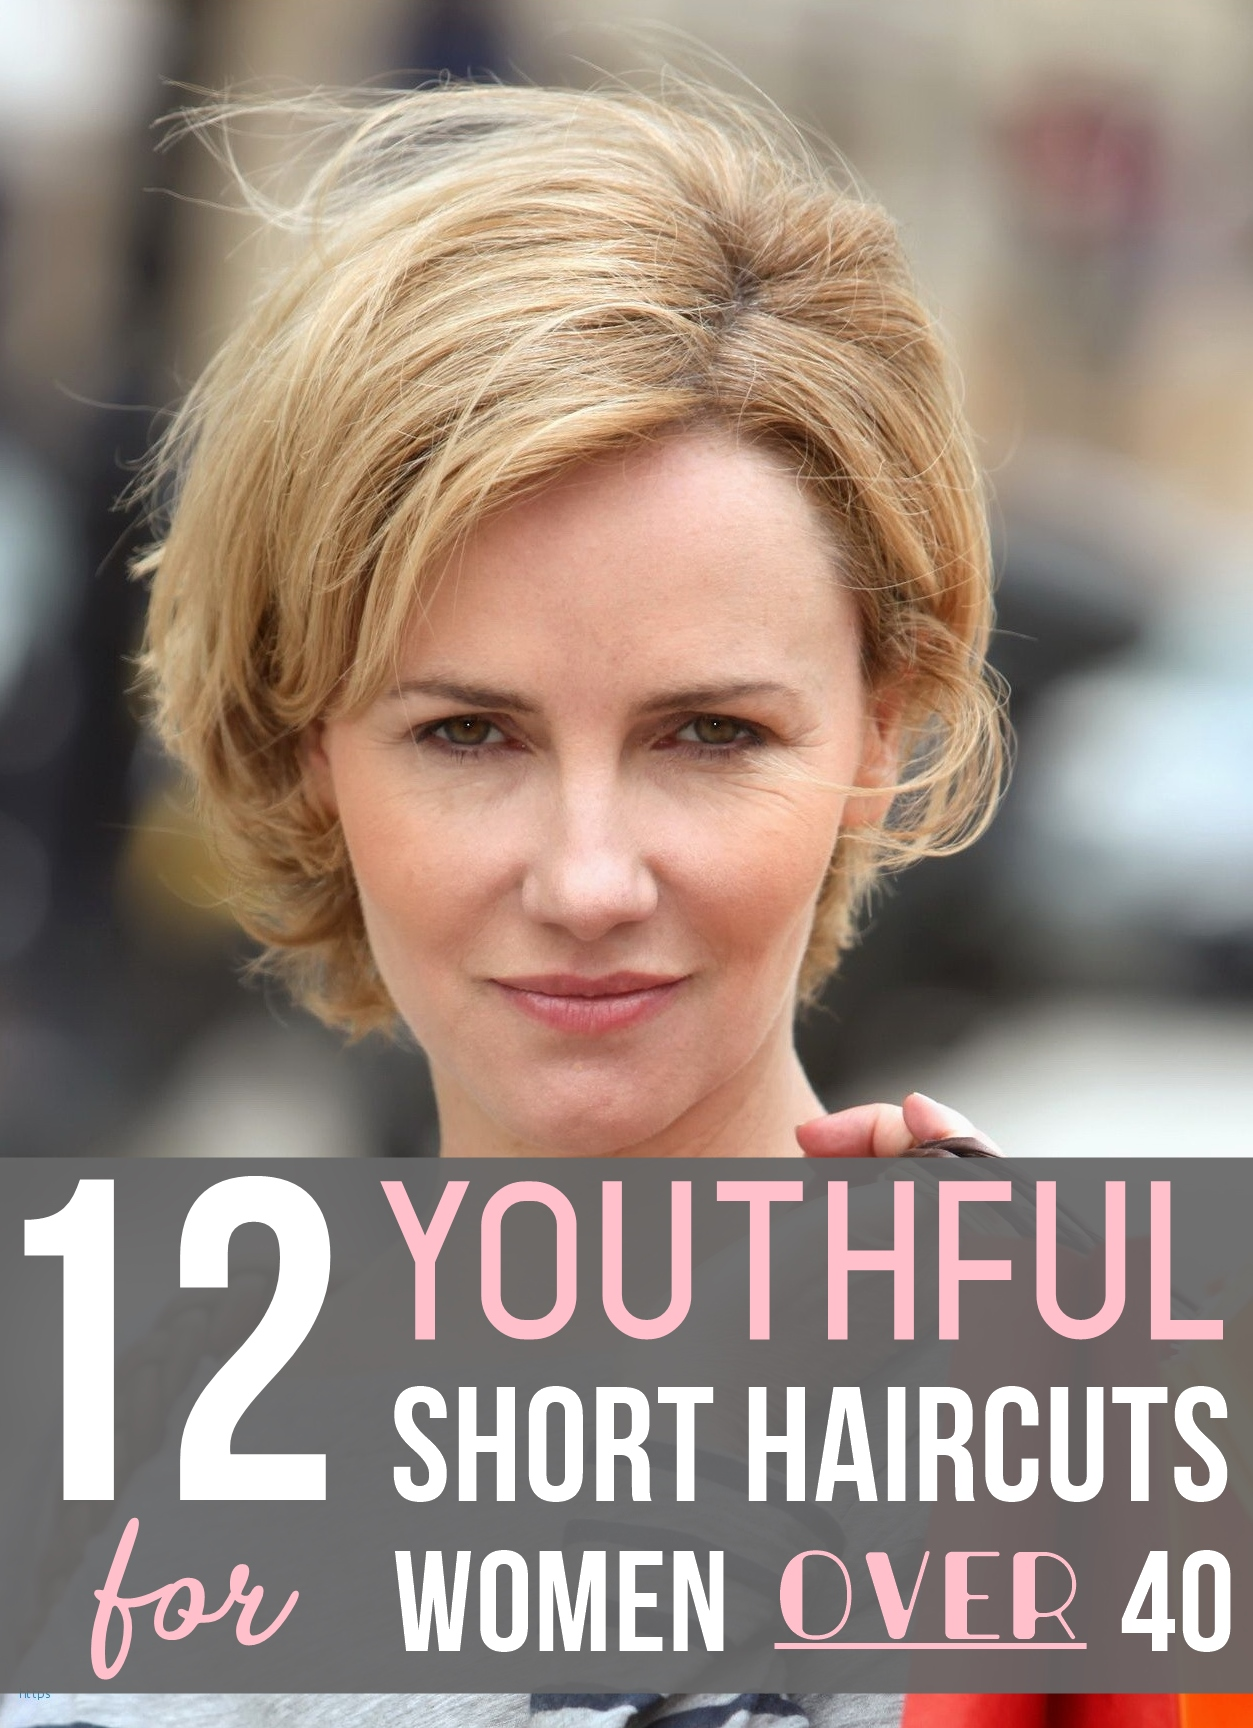 12 Youthful Short Haircuts For Women Over 40